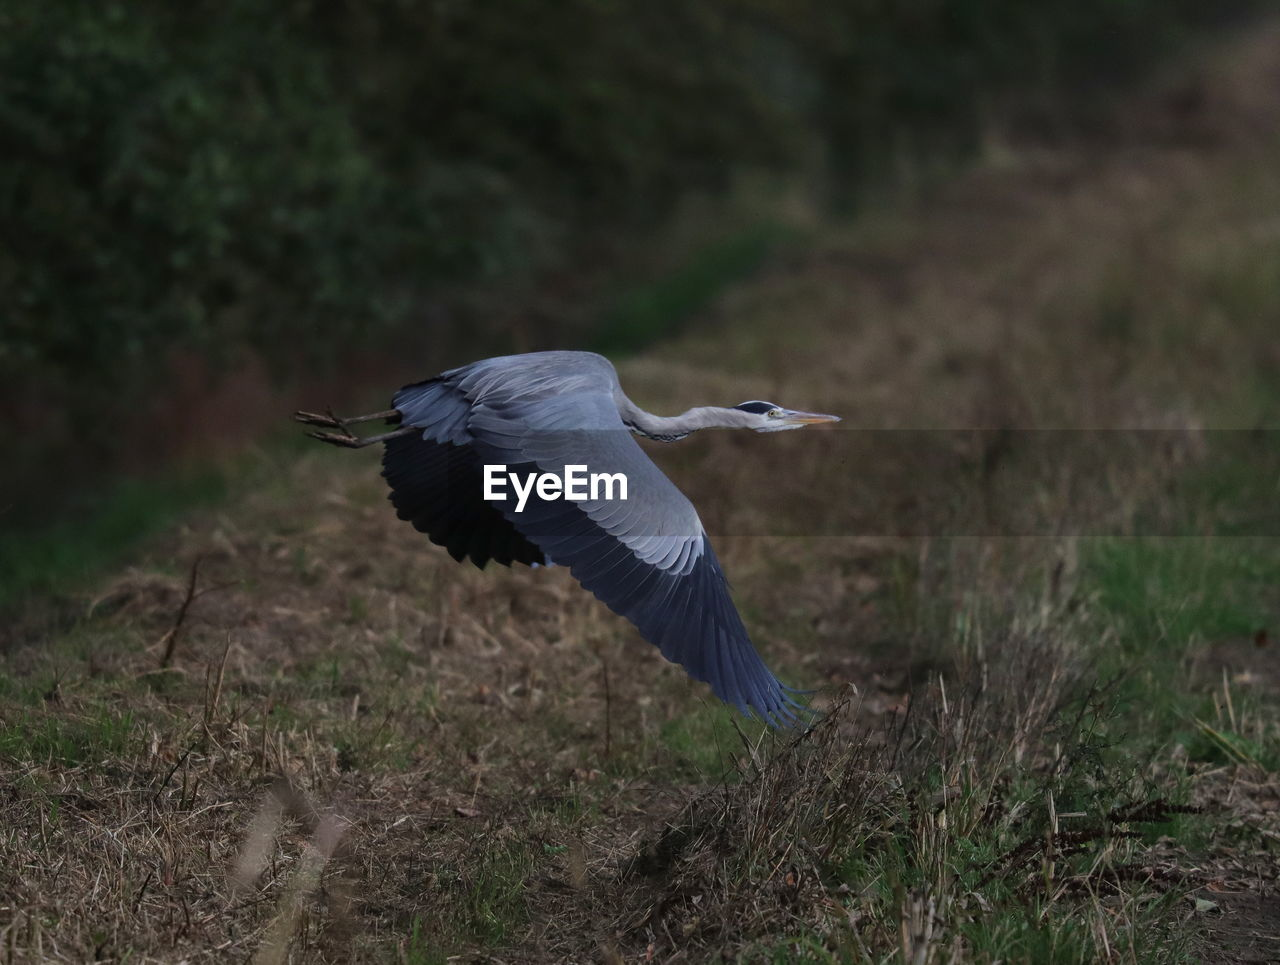 bird, vertebrate, animal themes, animals in the wild, animal, one animal, animal wildlife, flying, heron, mid-air, spread wings, land, no people, nature, field, plant, gray heron, water bird, day, focus on foreground, outdoors